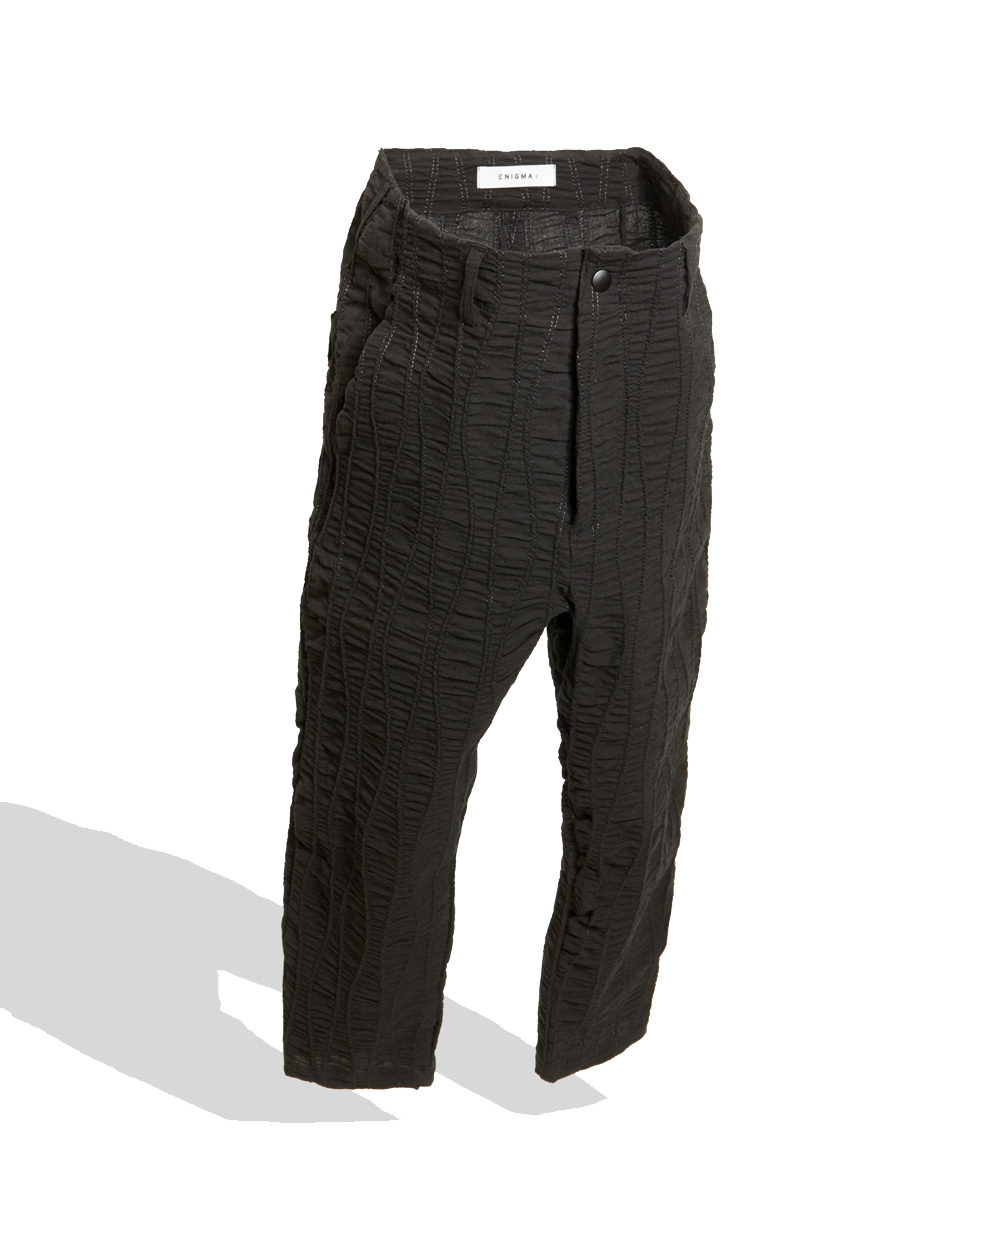 이니그마 Cropped Dart Pants (Black crease)